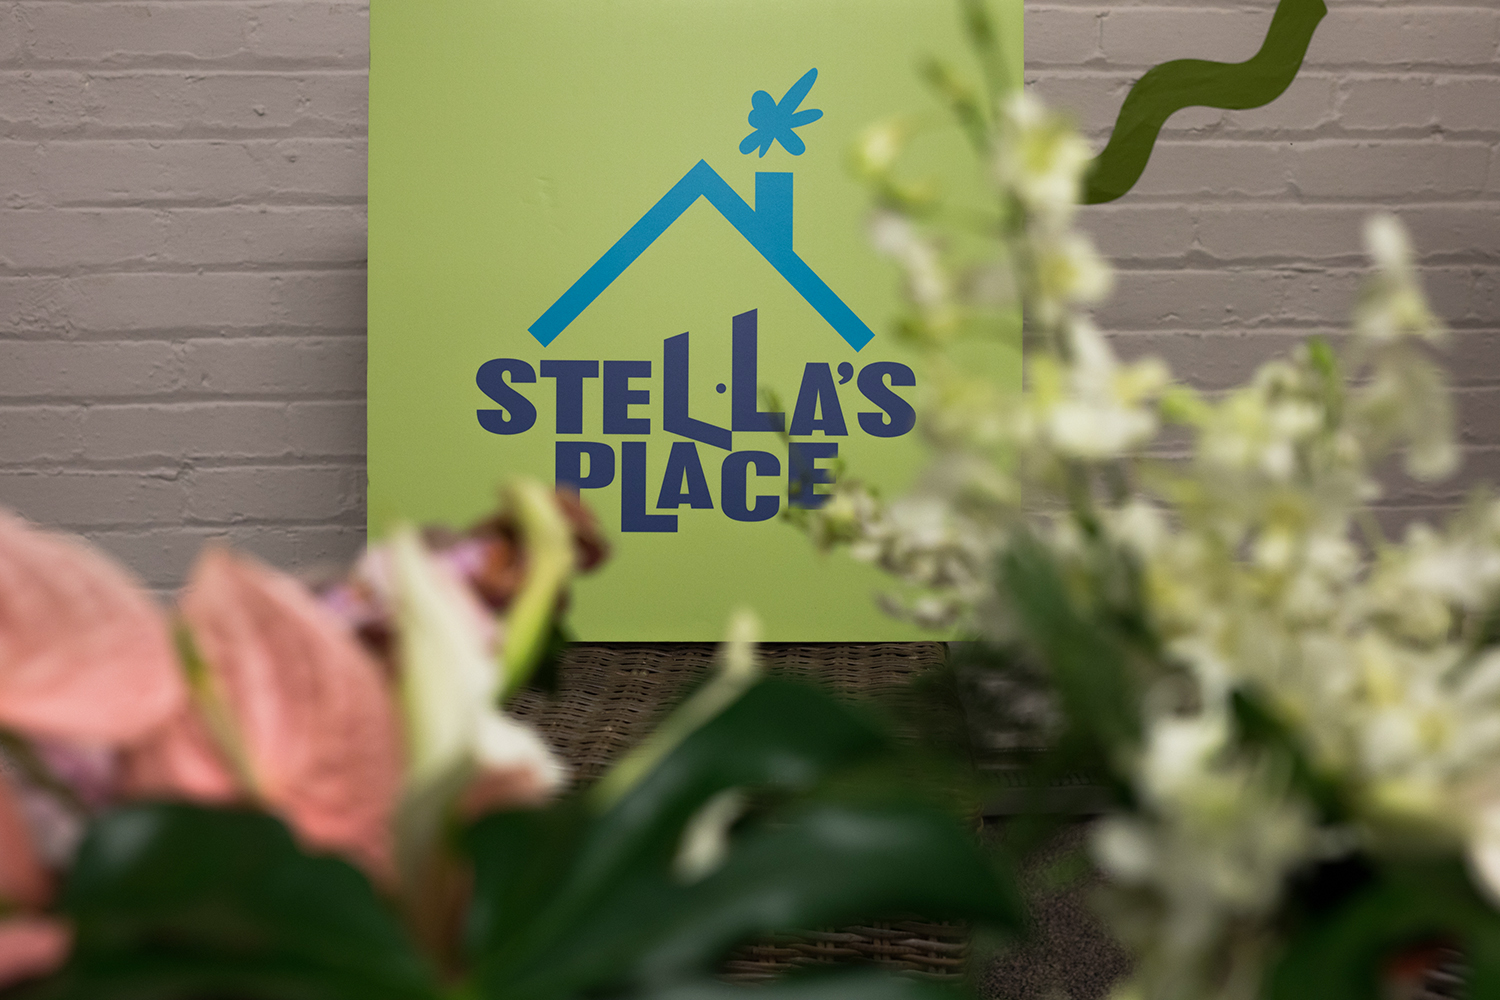 A printed canvas of the Stella's Place purple and blue logo on a lime green board. Blurred in the foreground are pink, white and green flowers.